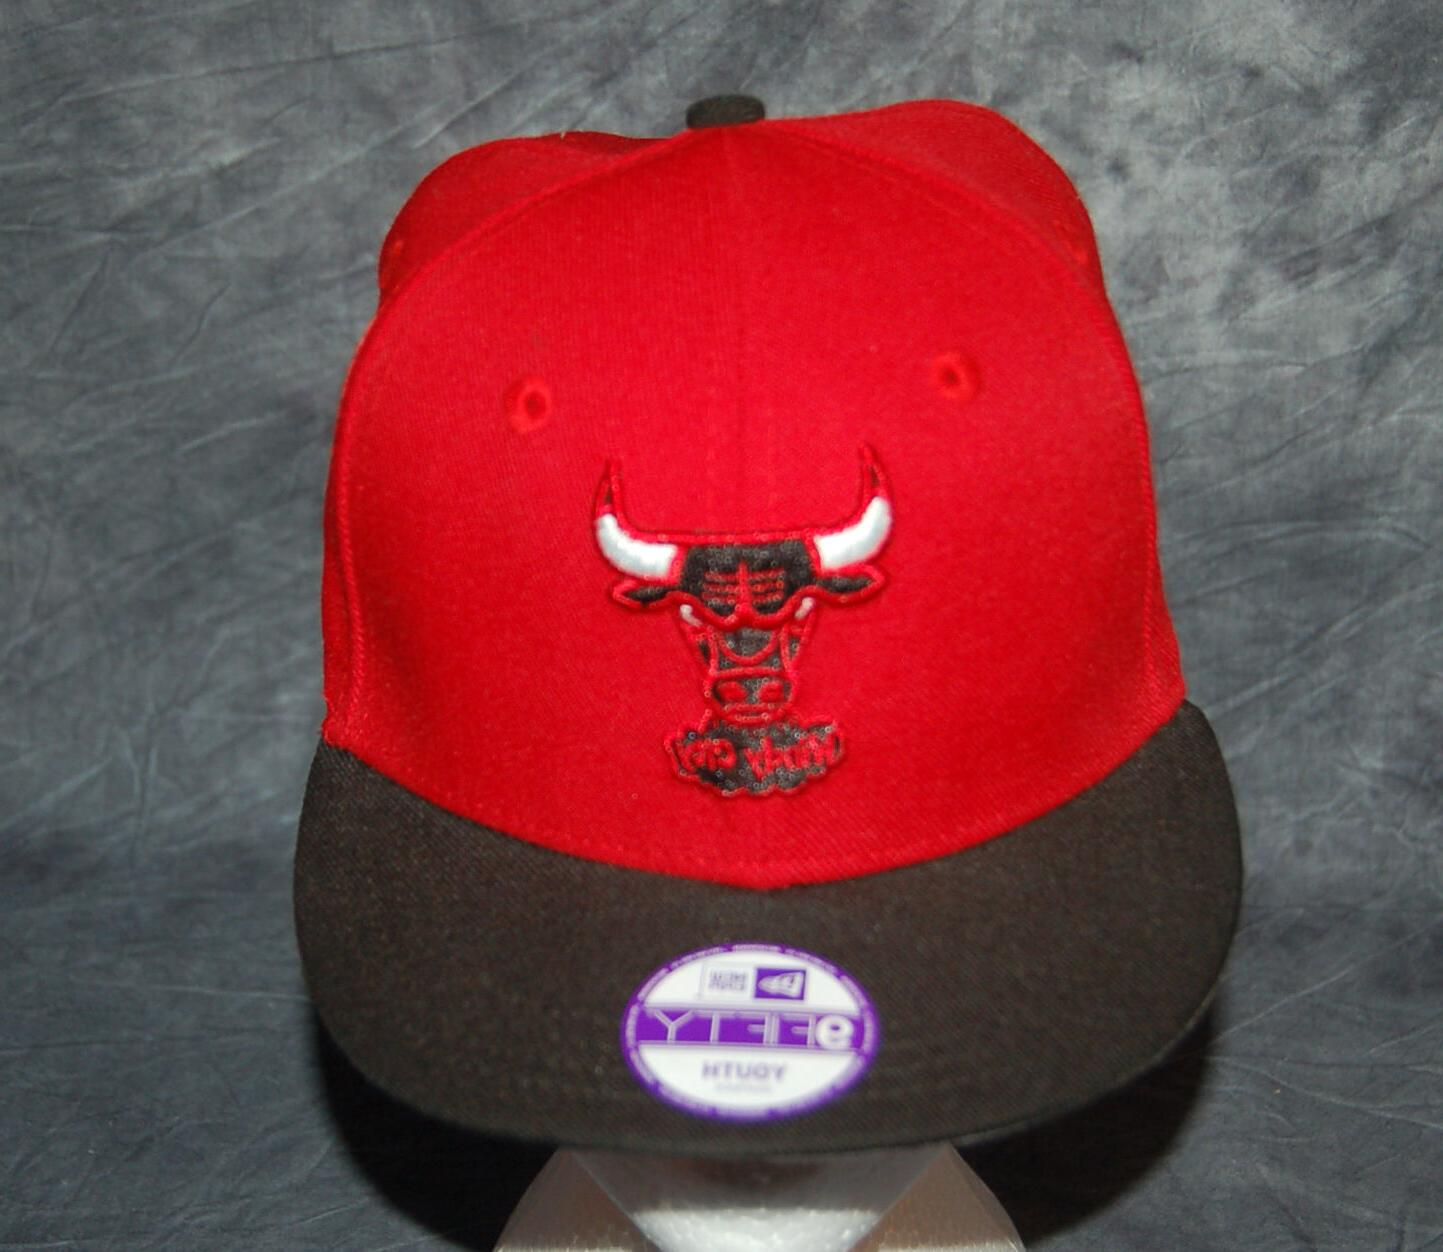 chicago bulls youth hat 9fifty adjustable osfm